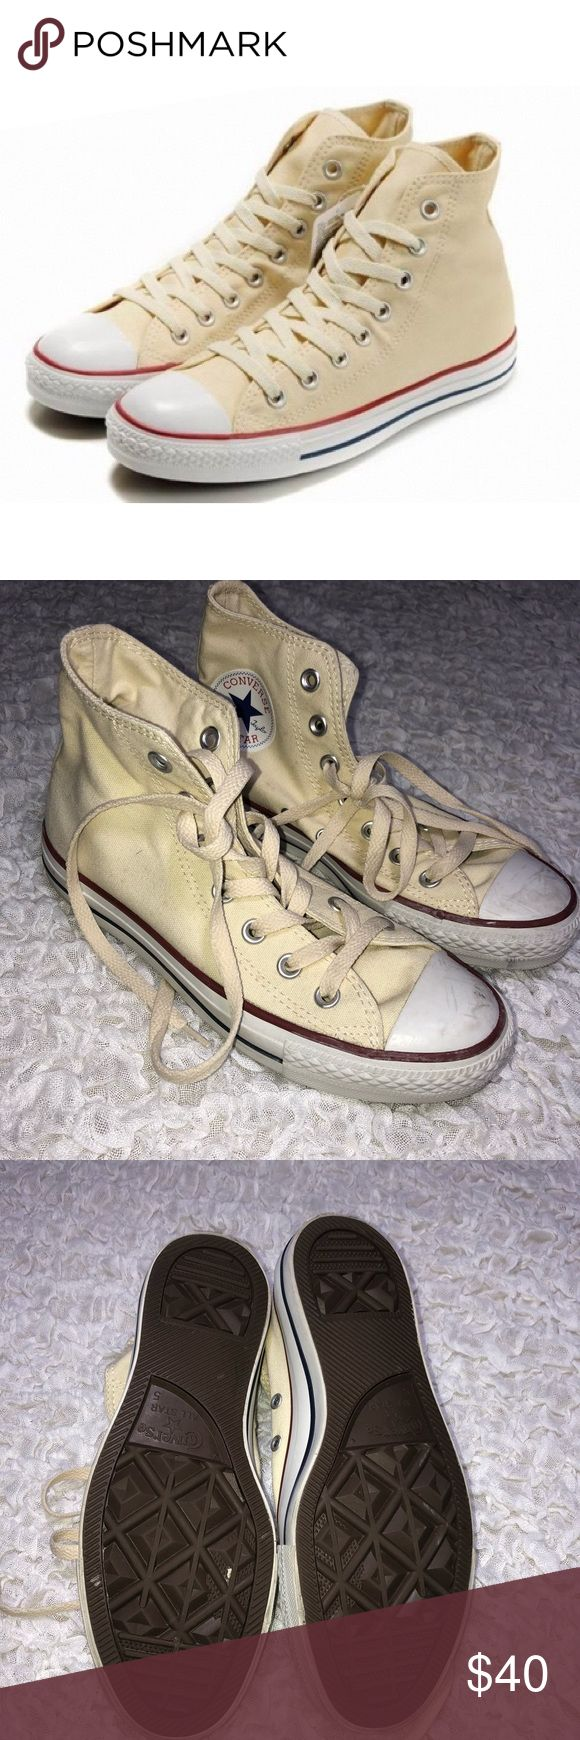 Cream Converse All star Hi Top sneakers These Cream Converse All star Hi Top sneakers tennis shoes. Worn once, a couple scuffs but in otherwise mint condition Converse Shoes Sneakers